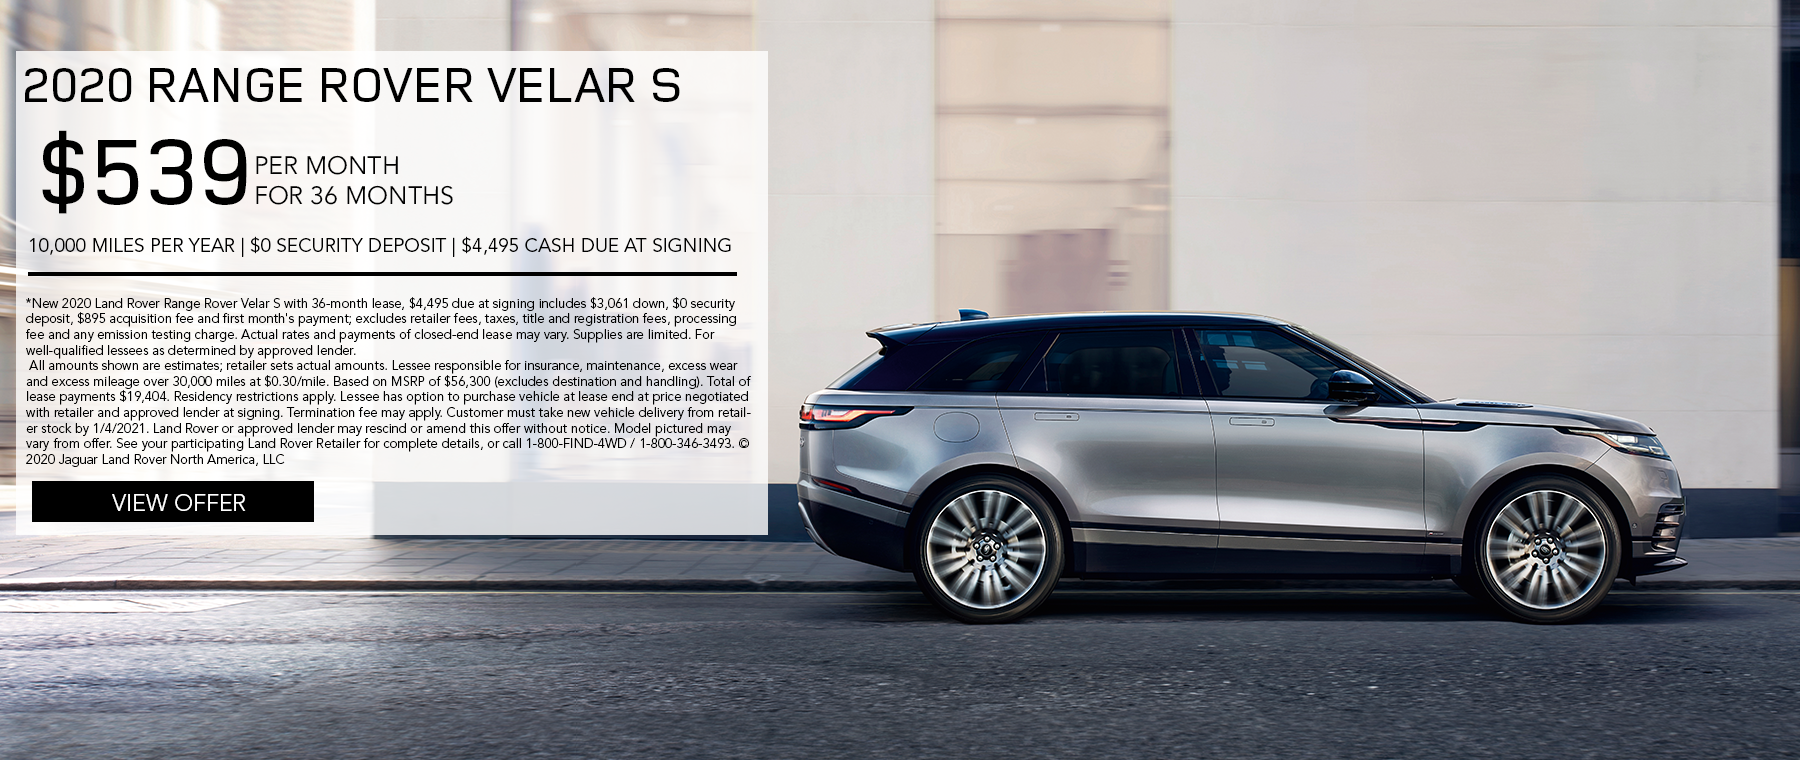 2020 RANGE ROVER VELAR S. $539 PER MONTH. 36 MONTH LEASE TERM. $4,495 CASH DUE AT SIGNING. $0 SECURITY DEPOSIT. 10,000 MILES PER YEAR. EXCLUDES RETAILER FEES, TAXES, TITLE AND REGISTRATION FEES, PROCESSING FEE AND ANY EMISSION TESTING CHARGE.ENDS 1/4/2021.